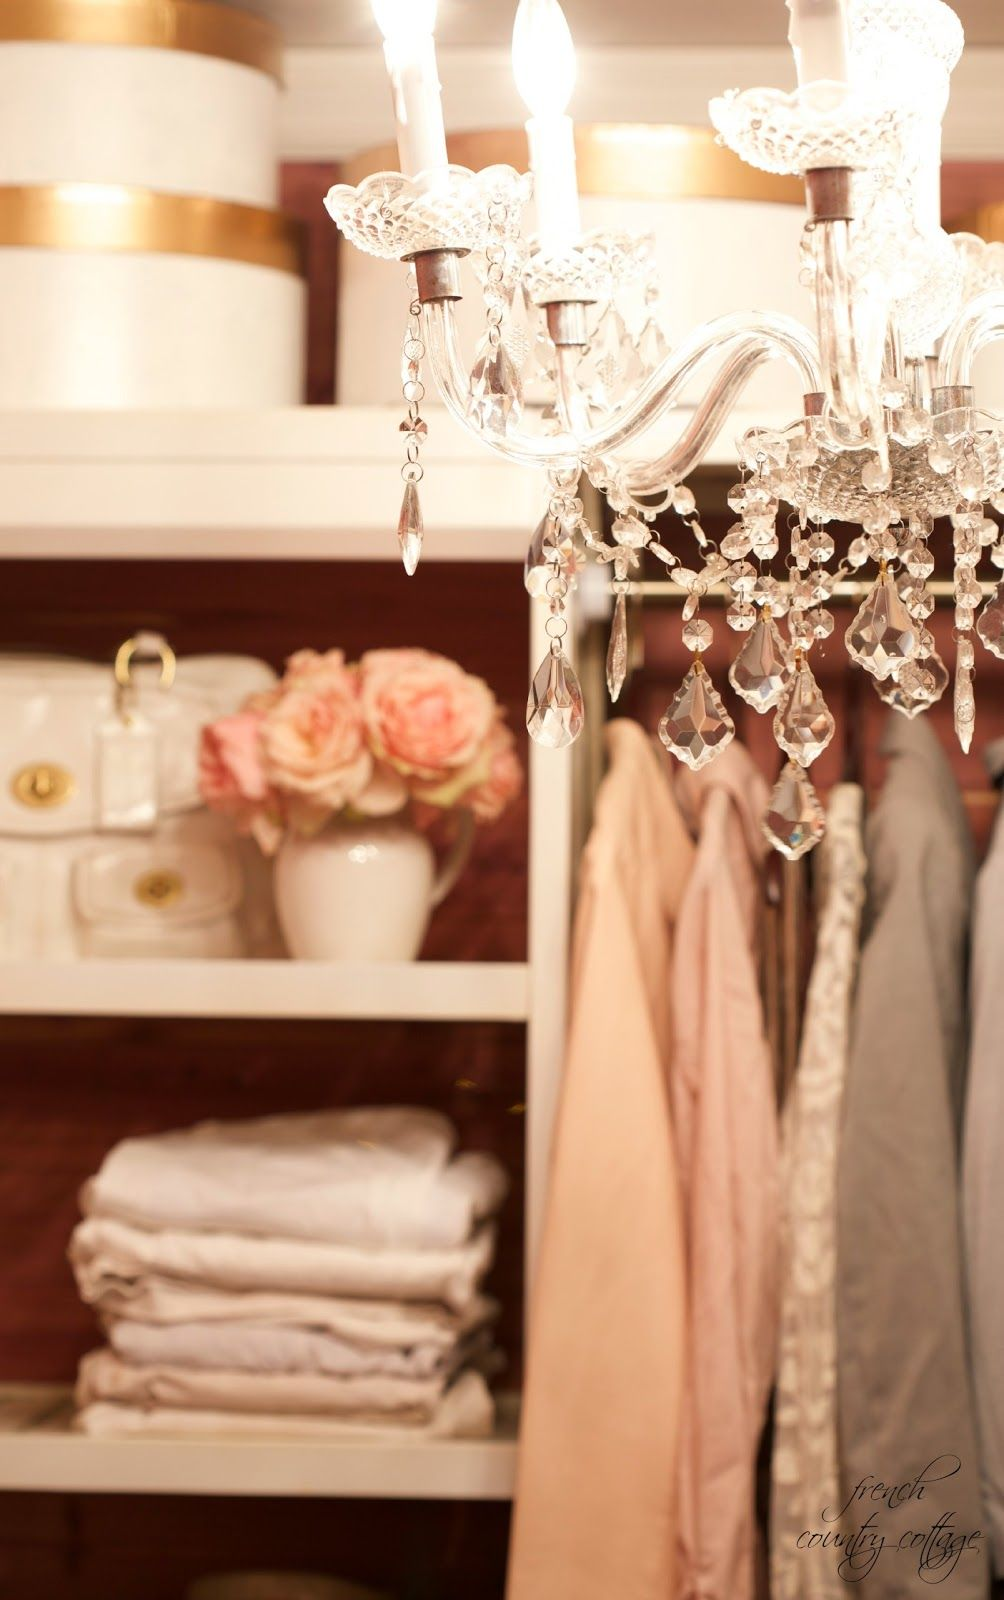 French Glam Closet Makeover Part One